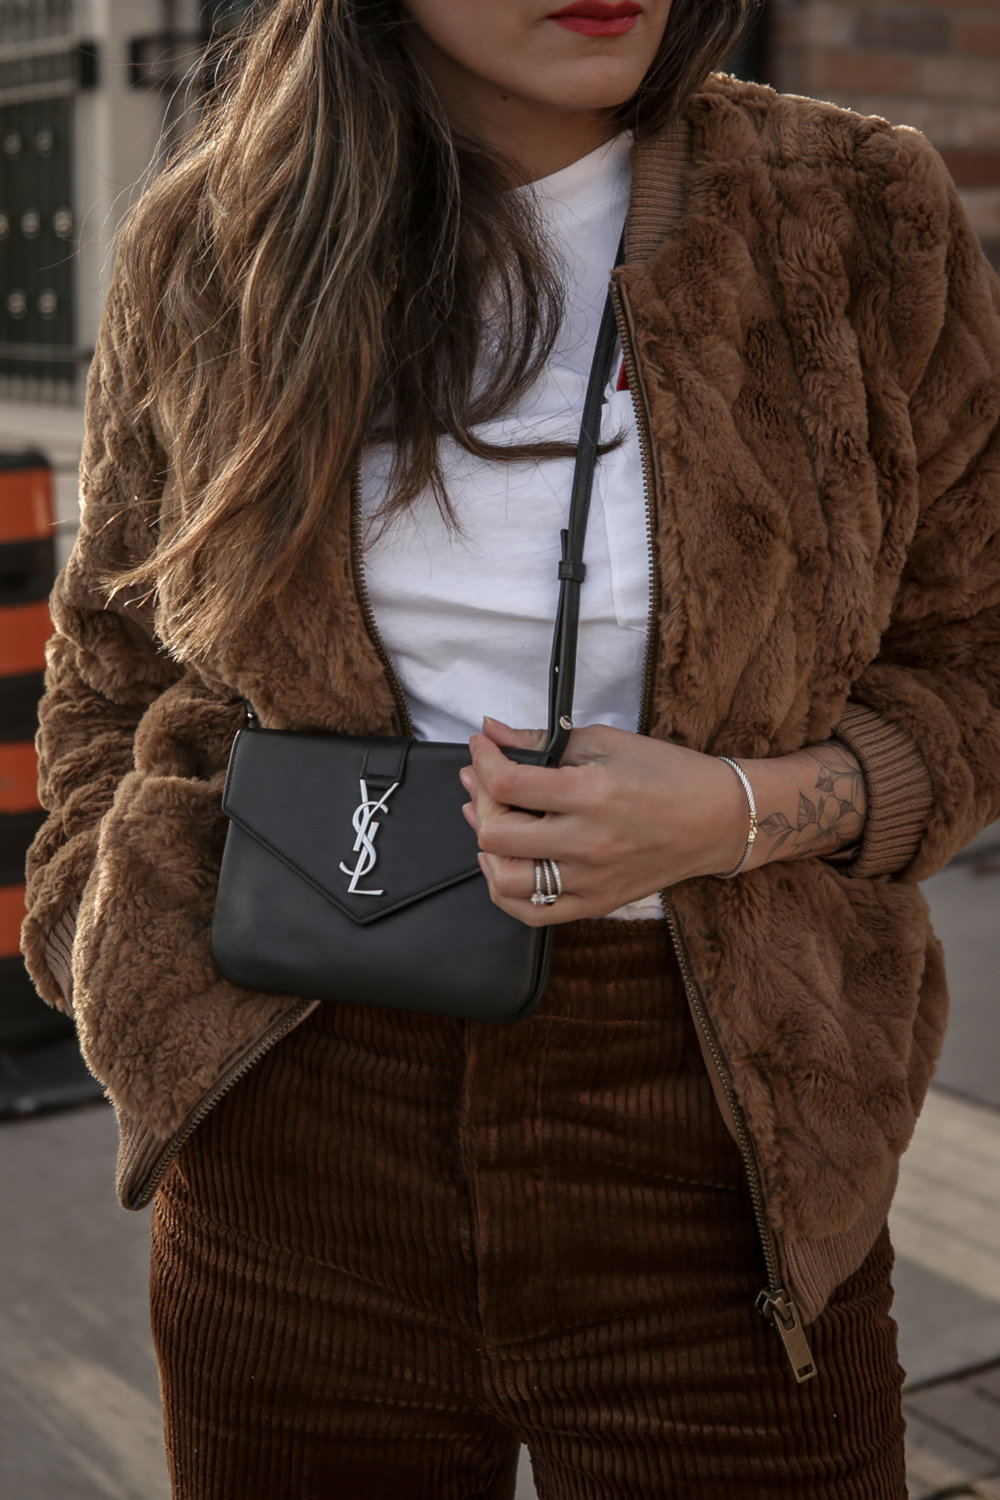 Nathalie Martin wearing brown teddy bear bomber jacket, corduroy pants, Sandro LOVE t-shirt, white sneakers, Saint Laurent Paris black bag, ivory Acne Studios Pansy face beanie, street style, Luka Sabbat inspired, woahstyle.com_4963.jpg